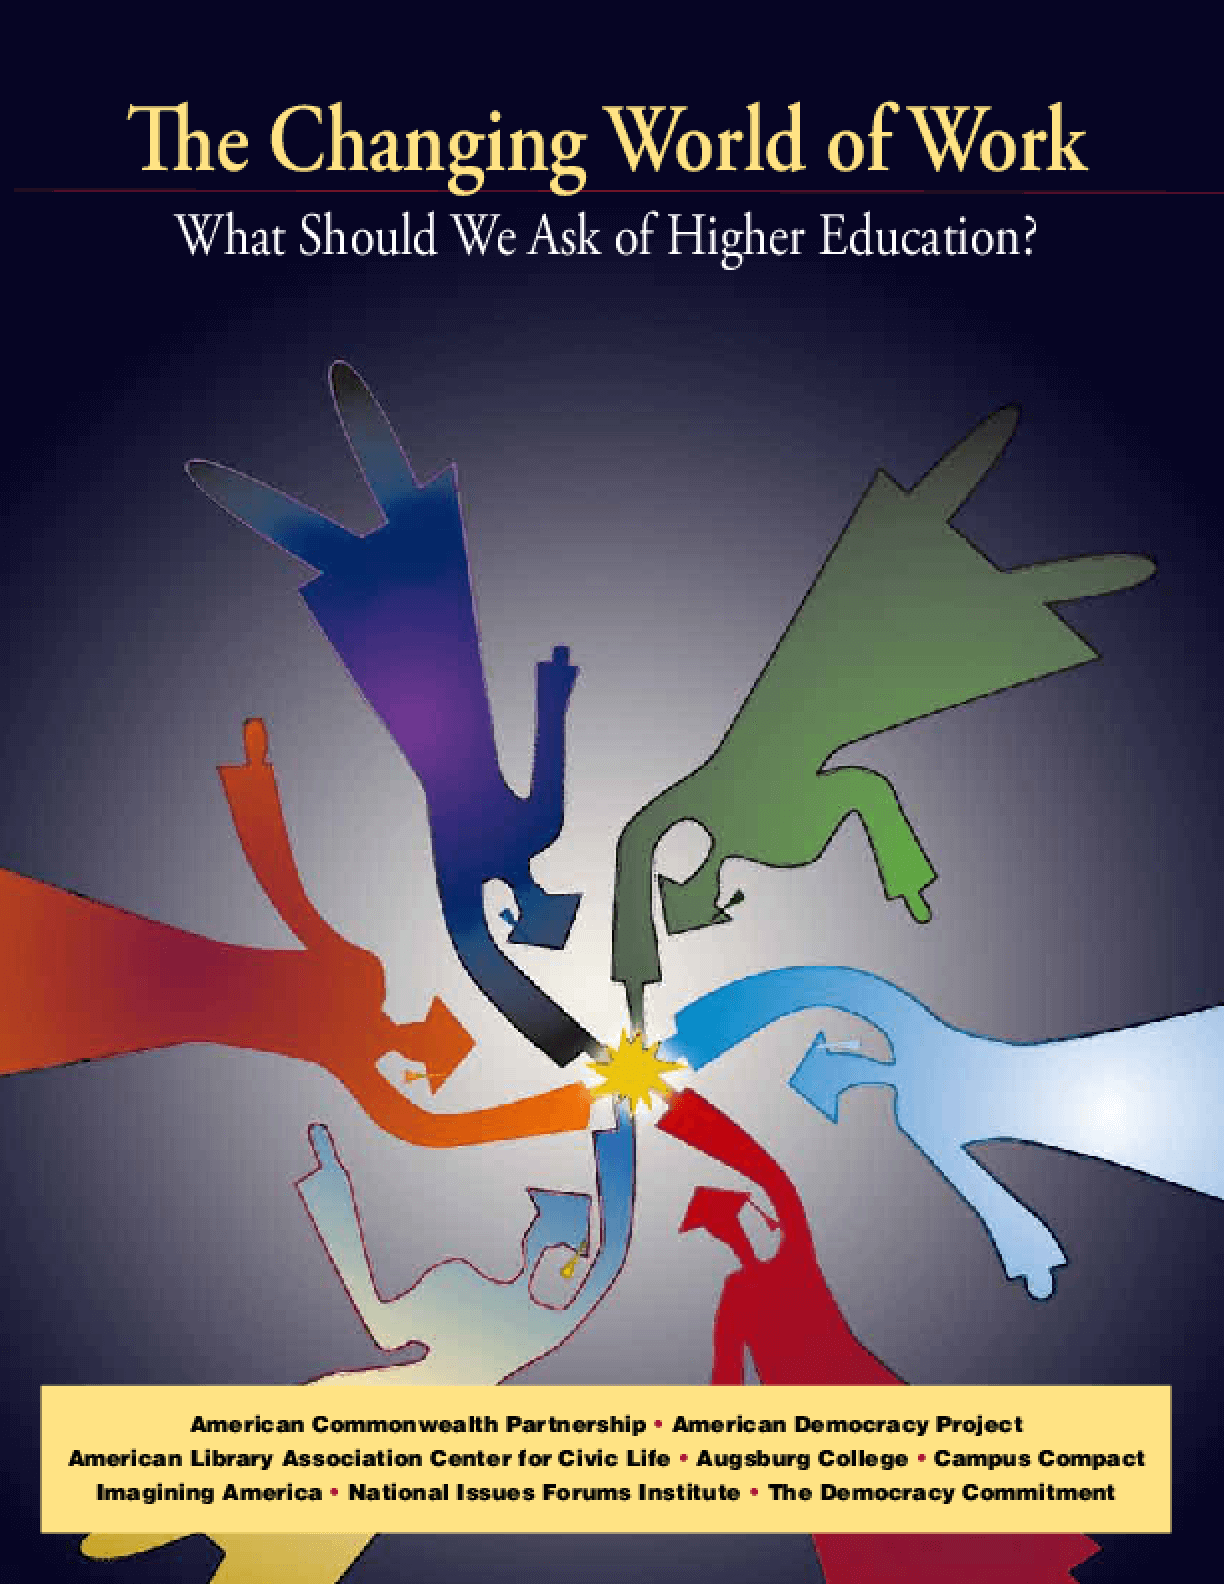 The Changing World of Work: What Should We Ask of Higher Education?